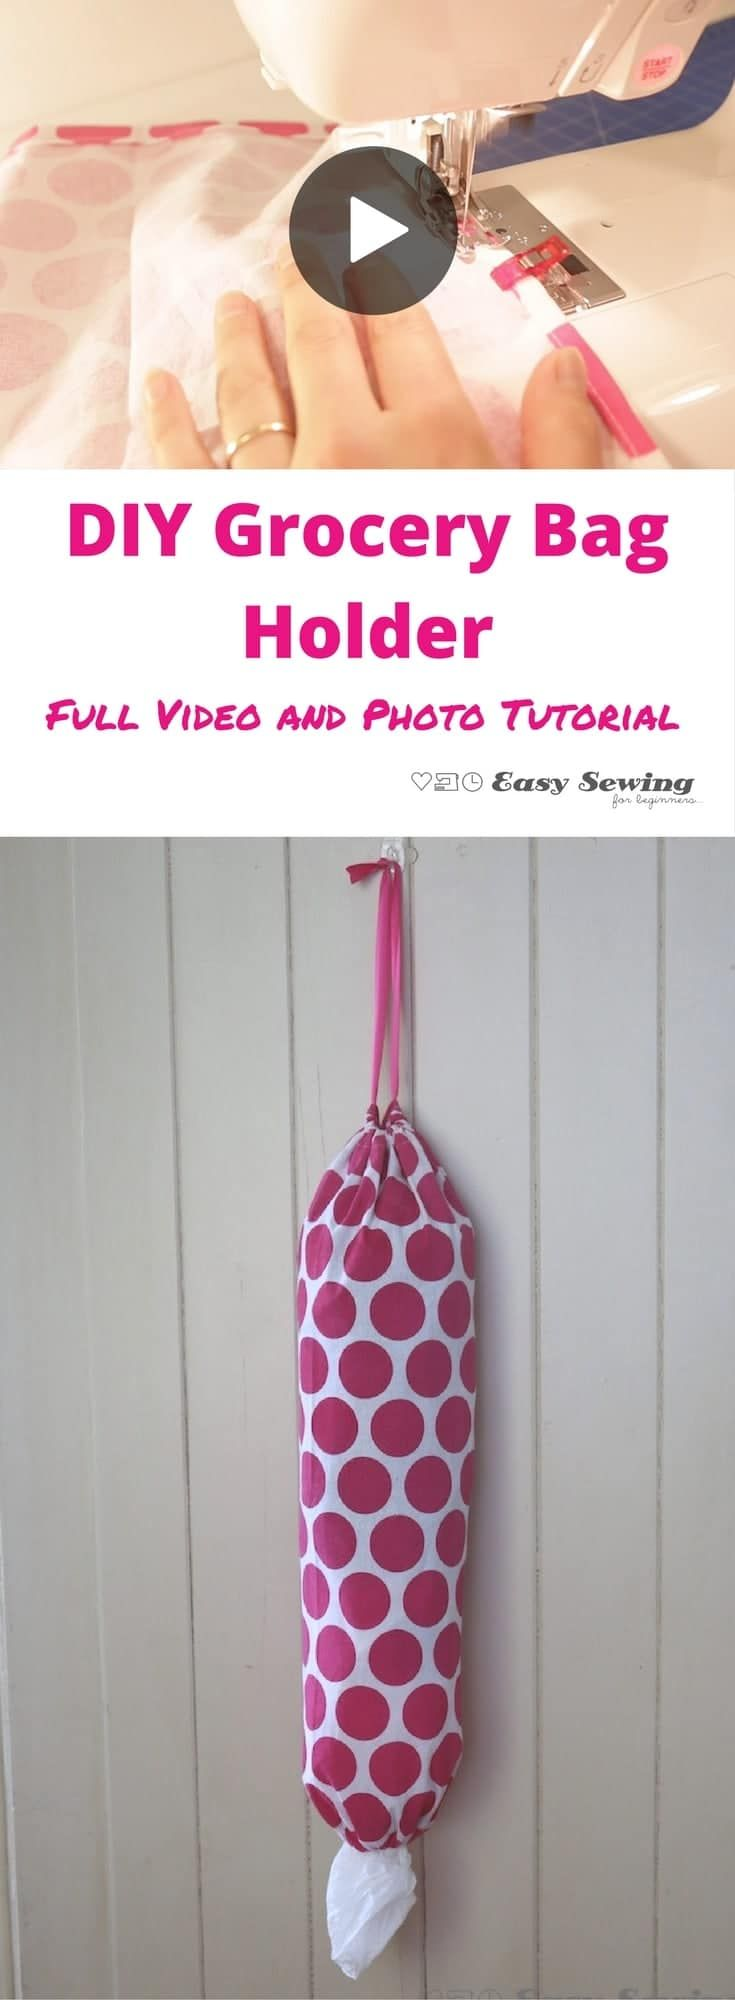 DIY Grocery bag holder video and photo tutorial